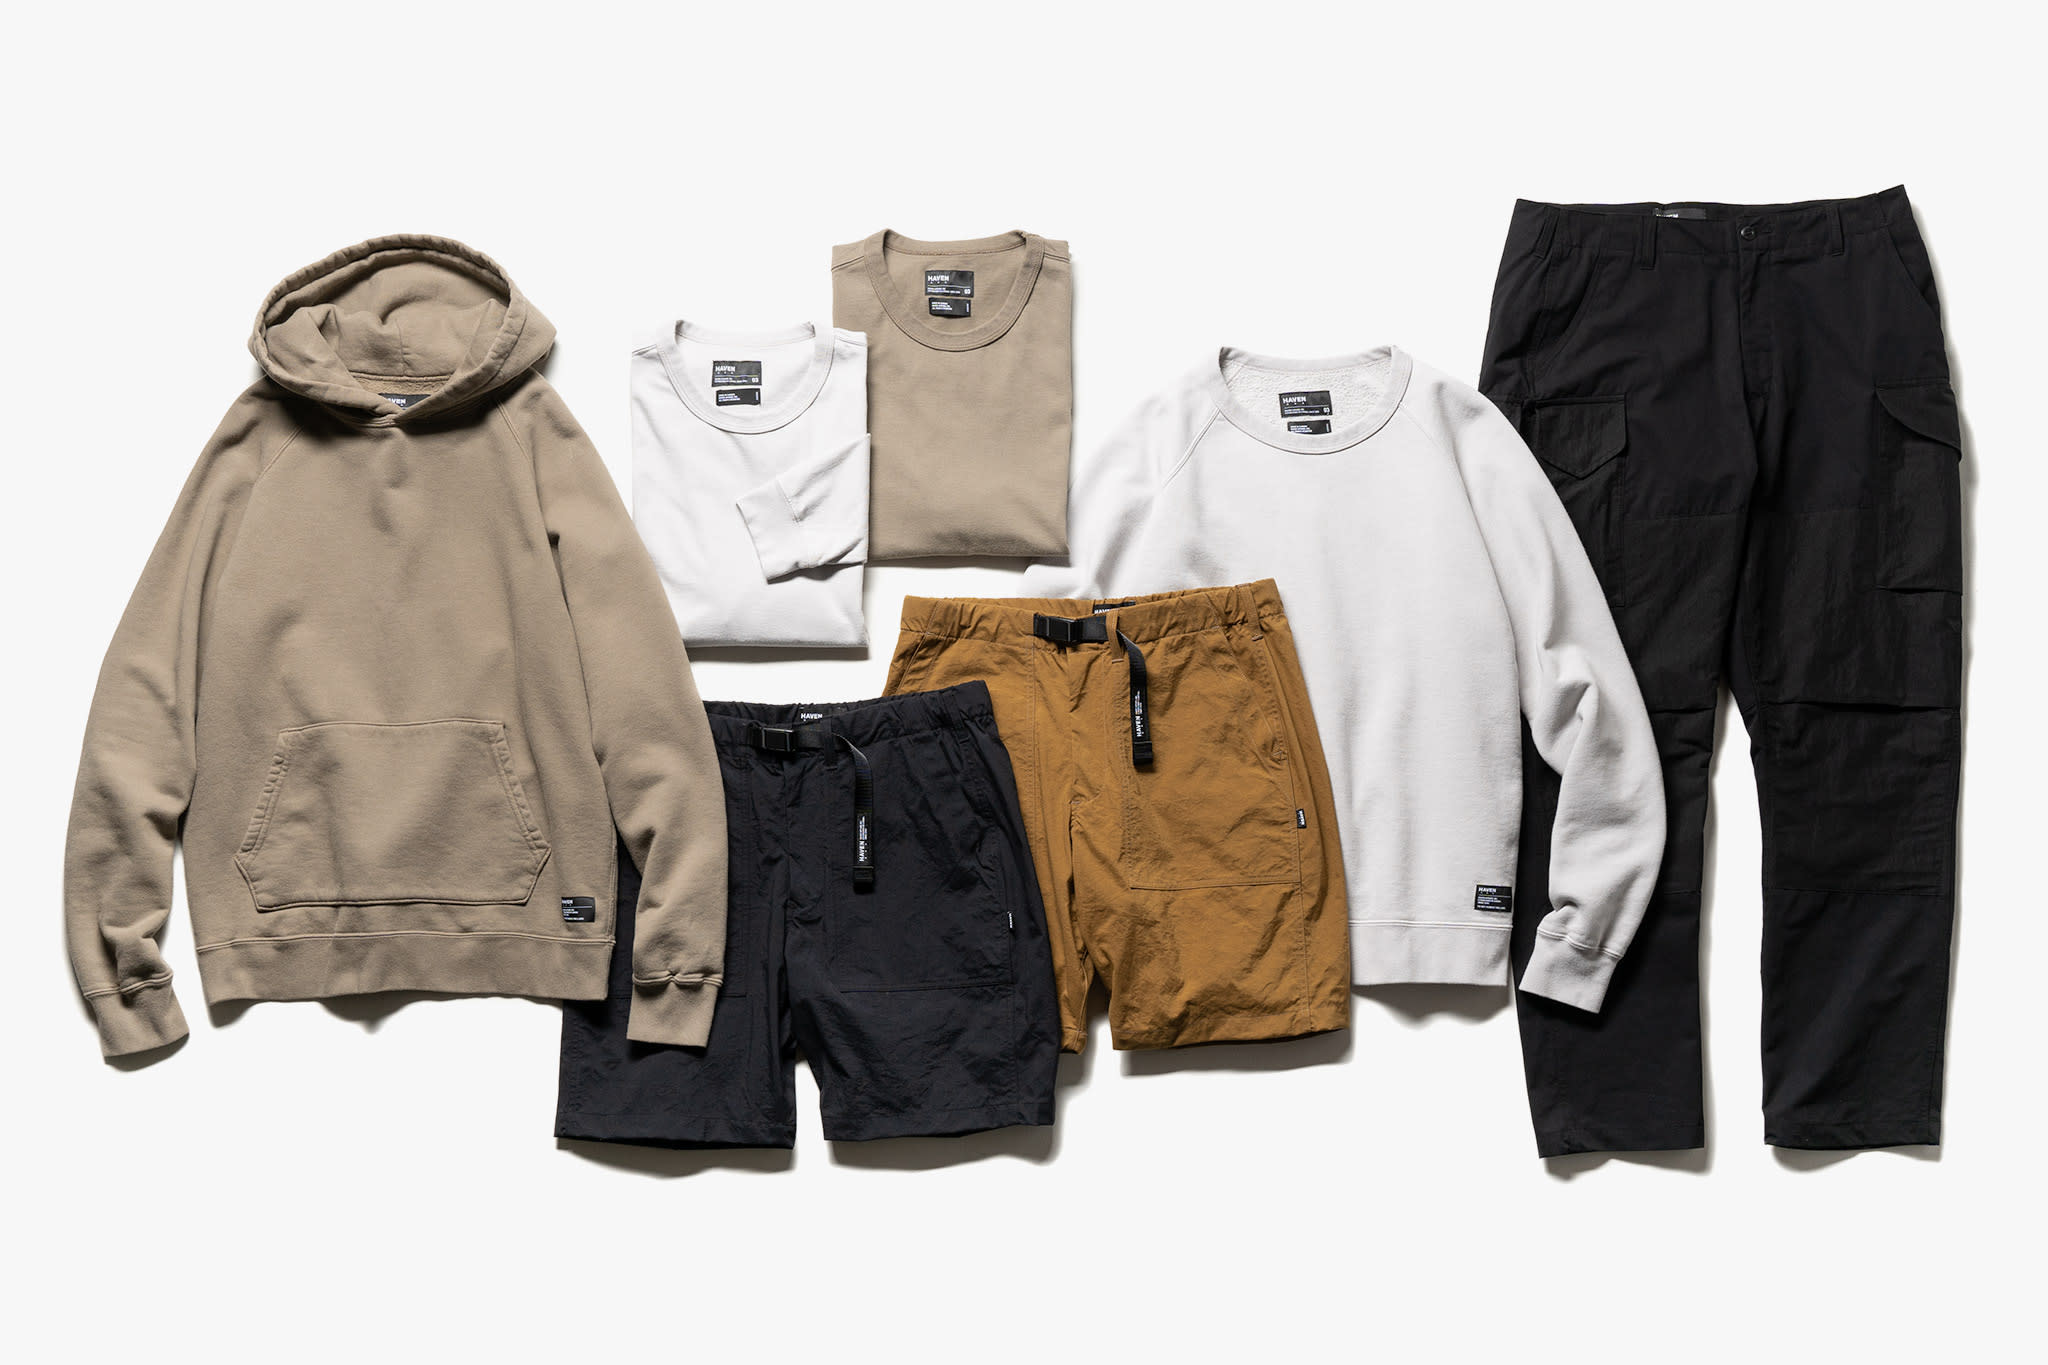 HAVEN SS20 Delivery 3